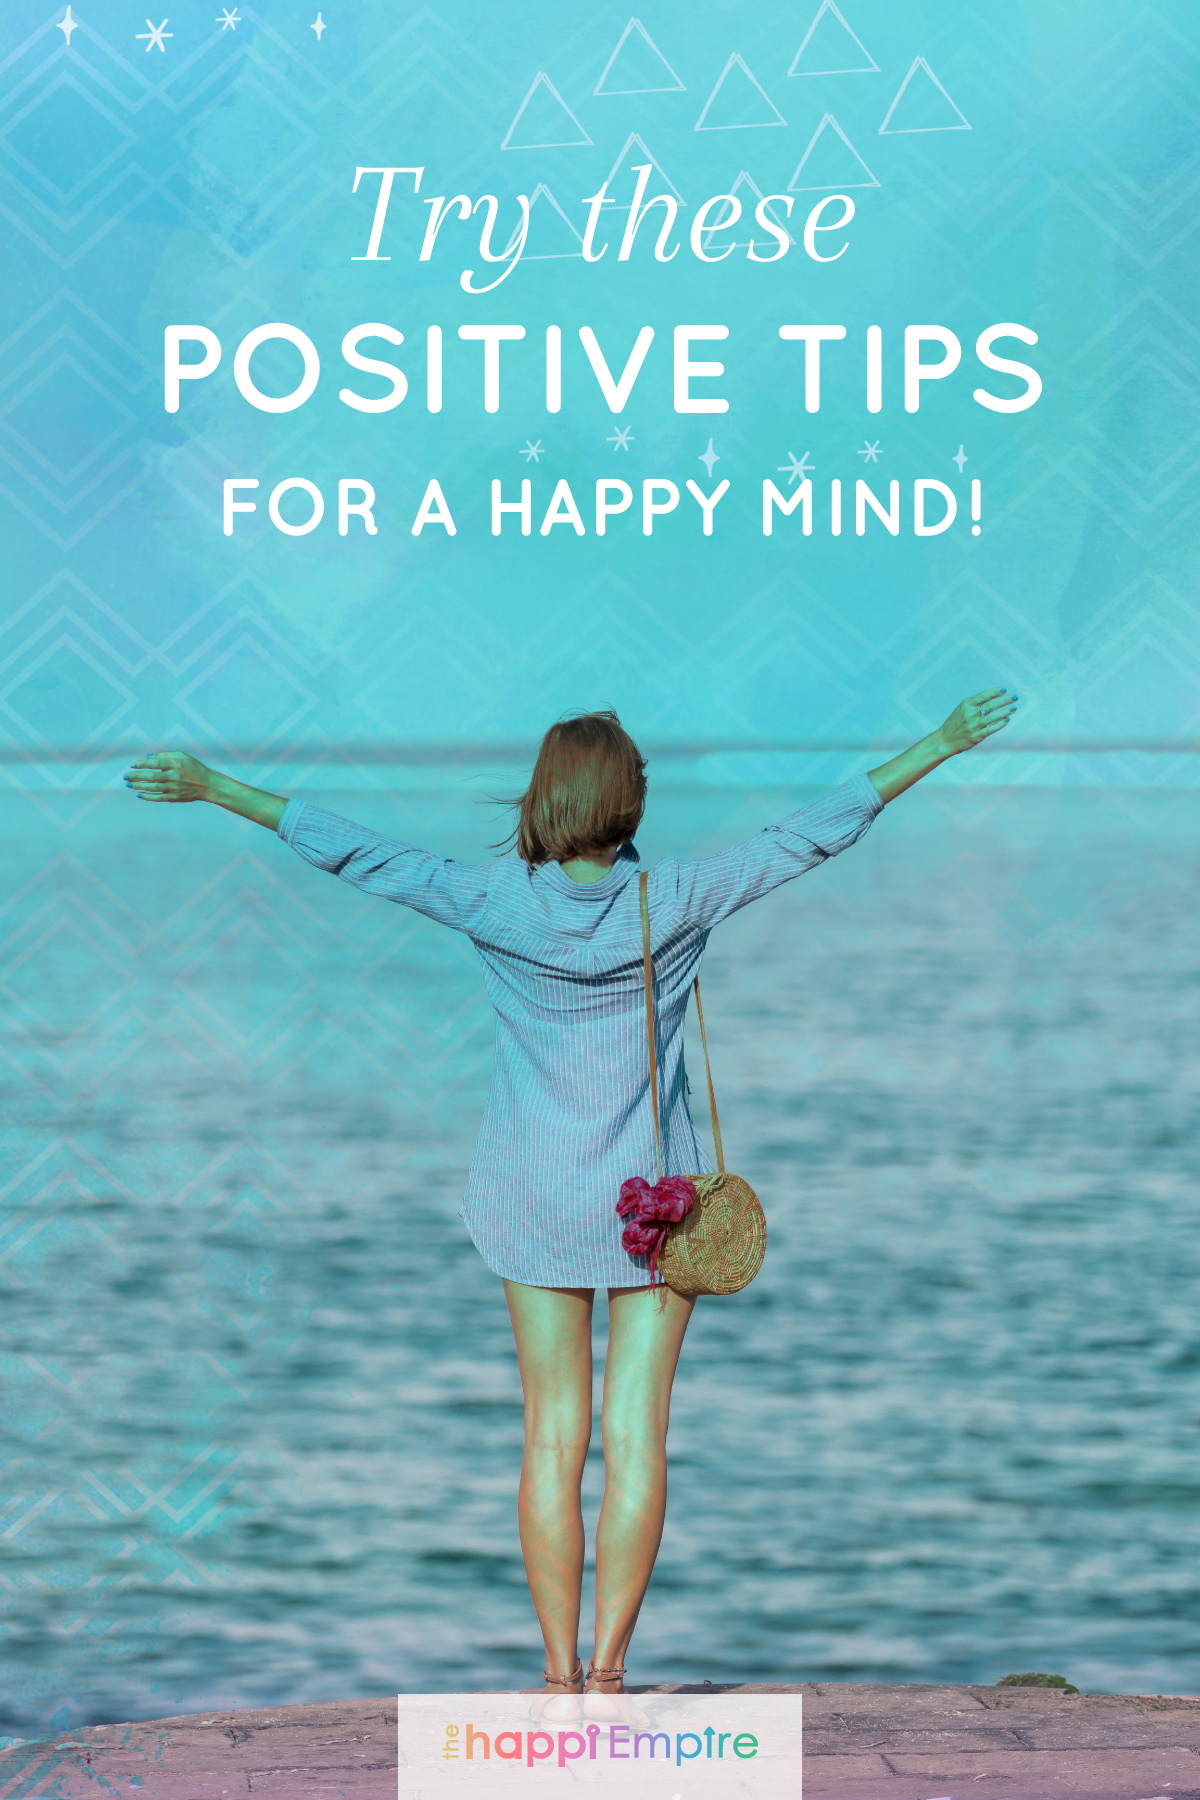 Try these positive tips for a happy mind